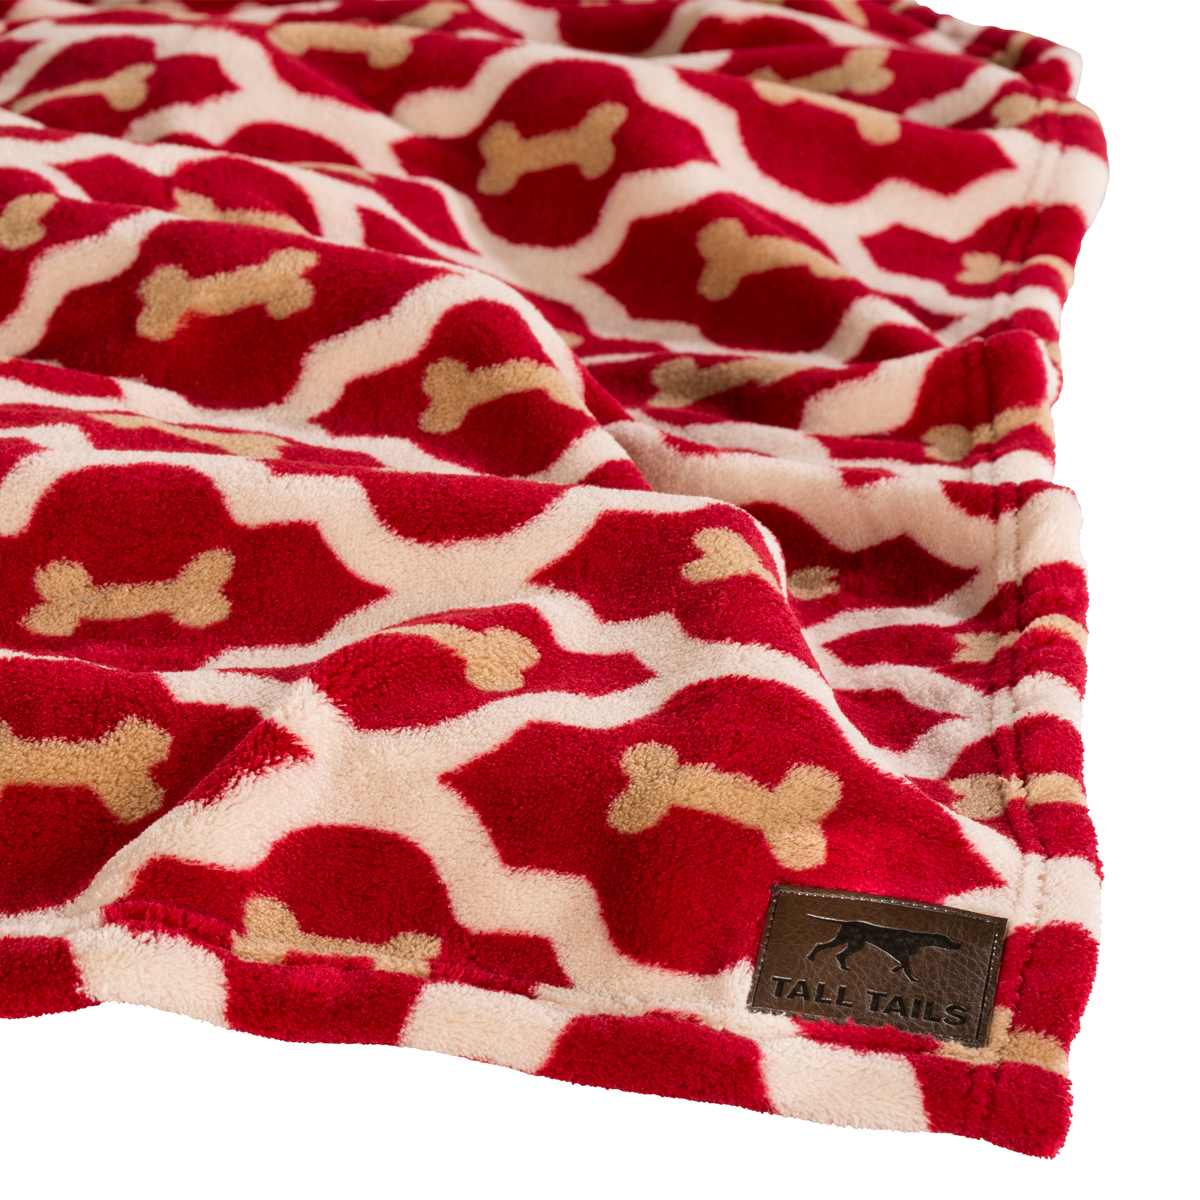 Tall Tails Red Bone Fleece Dog Blanket At Baxterboo